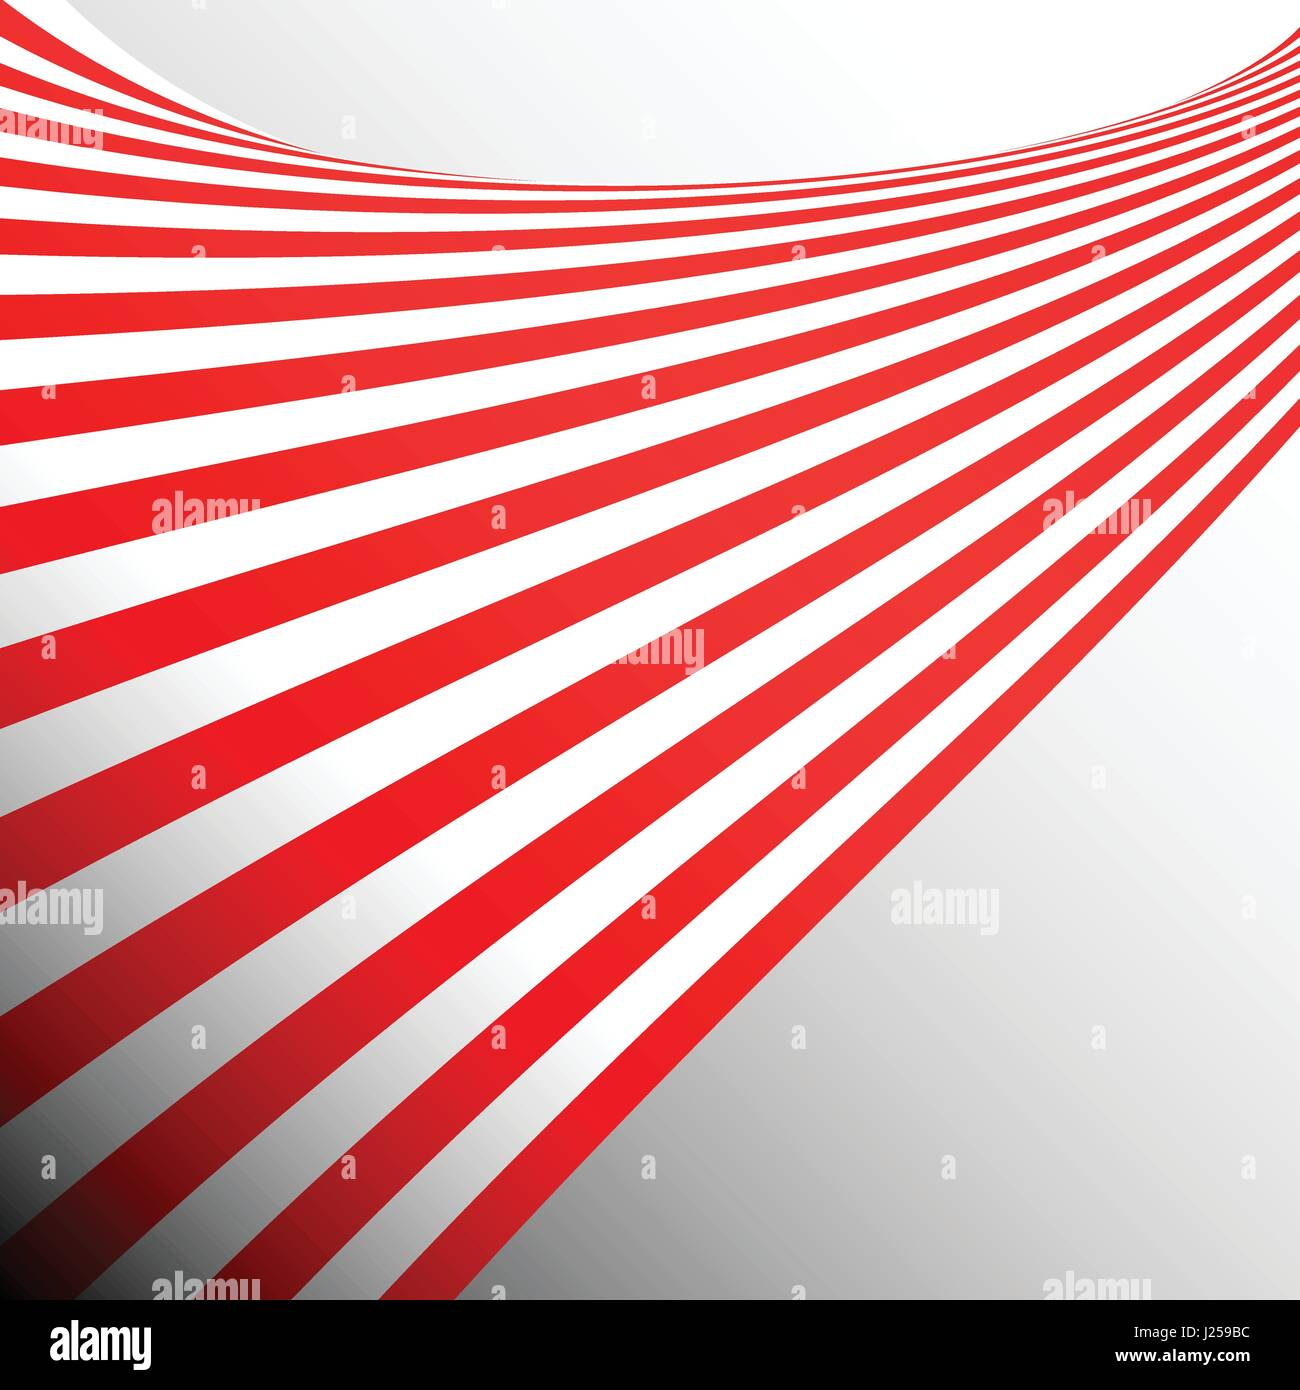 Two tone red stripes ribbon abstract background concept - Stock Image